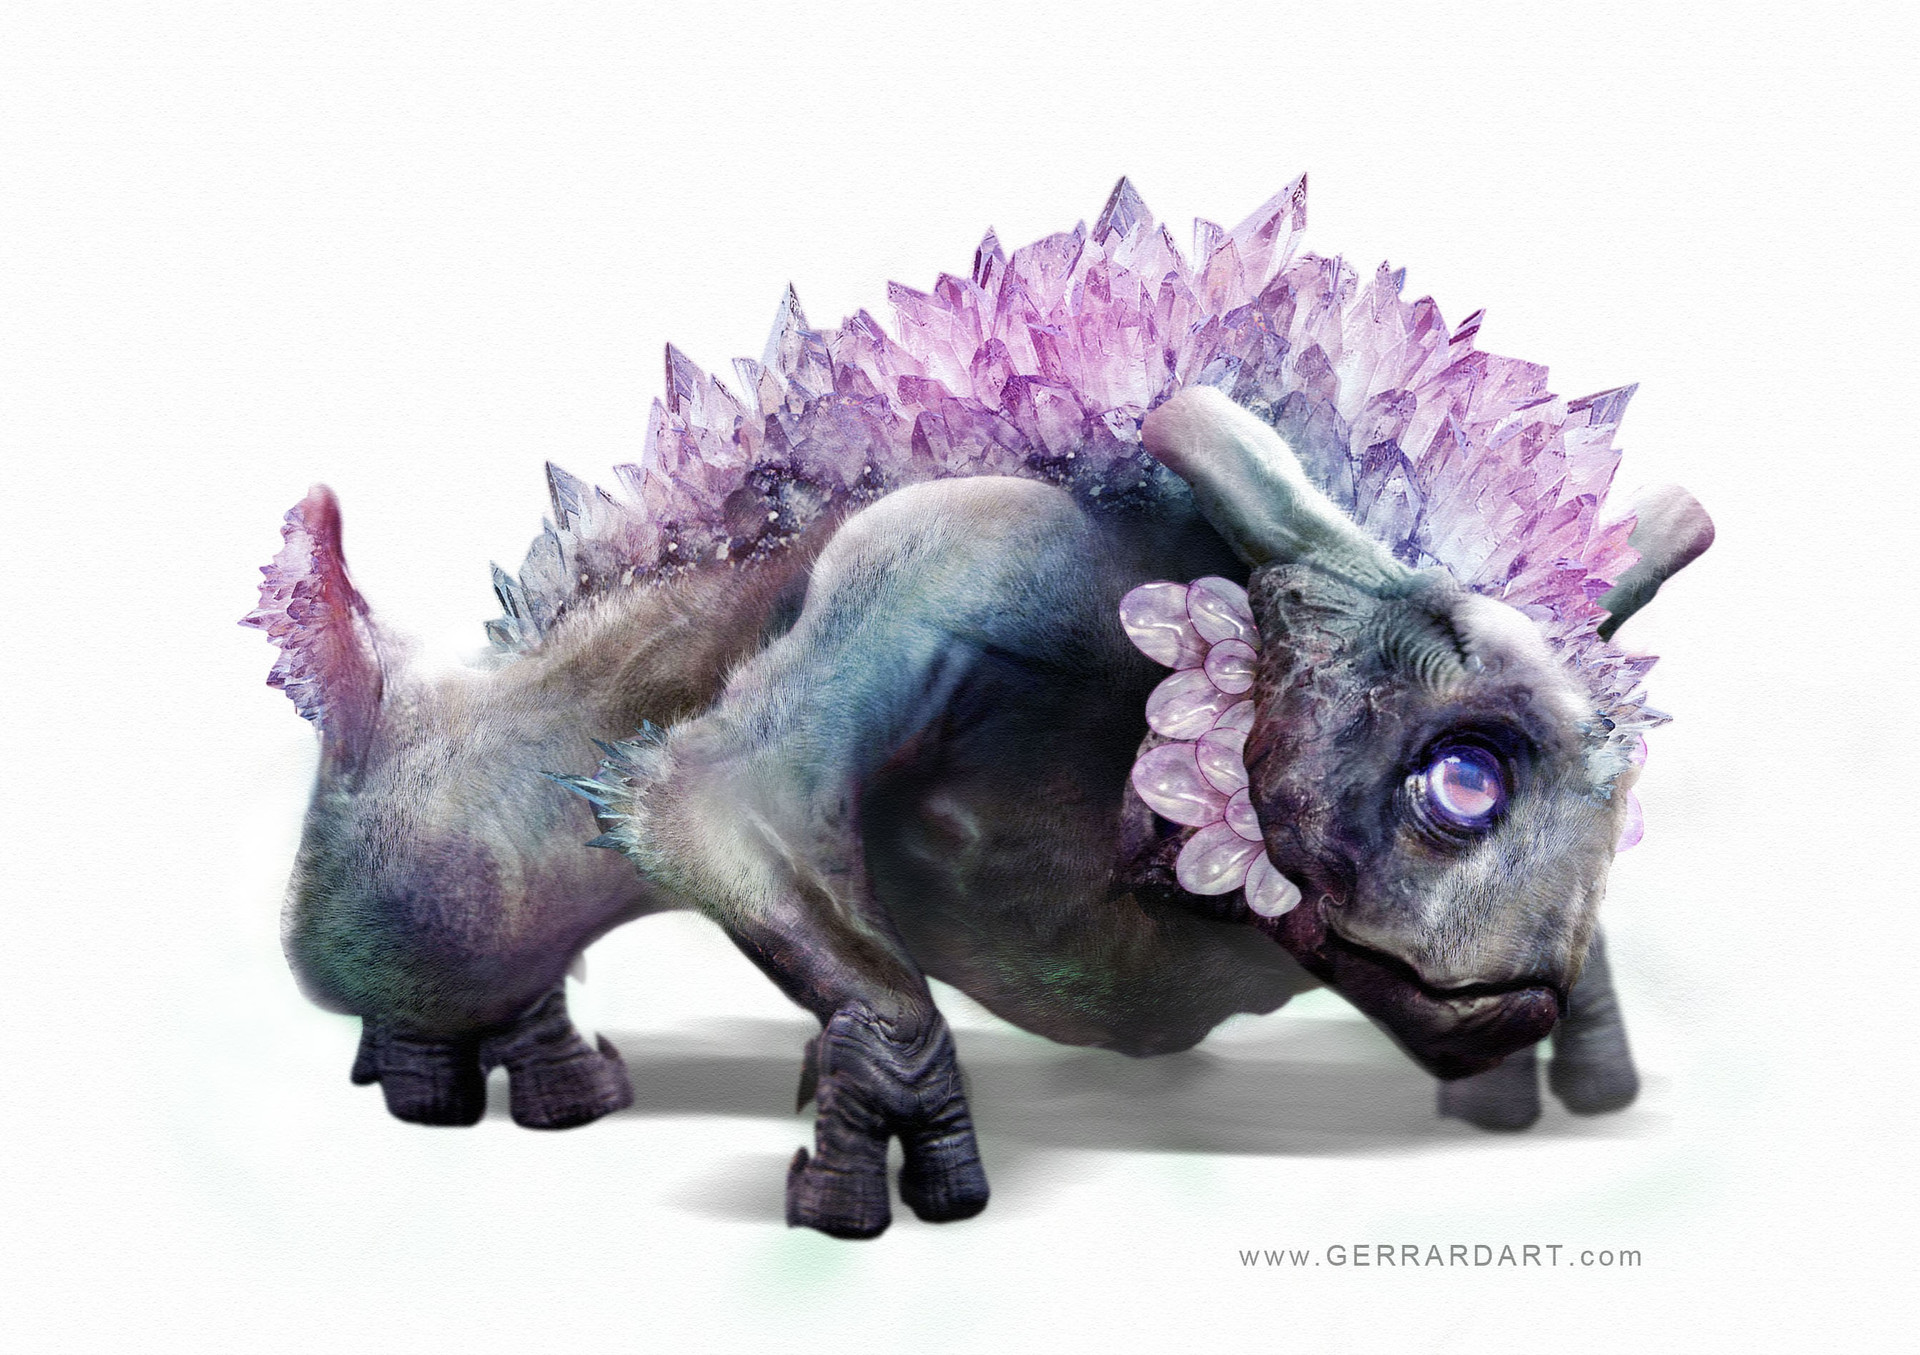 Paul gerrard crystal dog 02